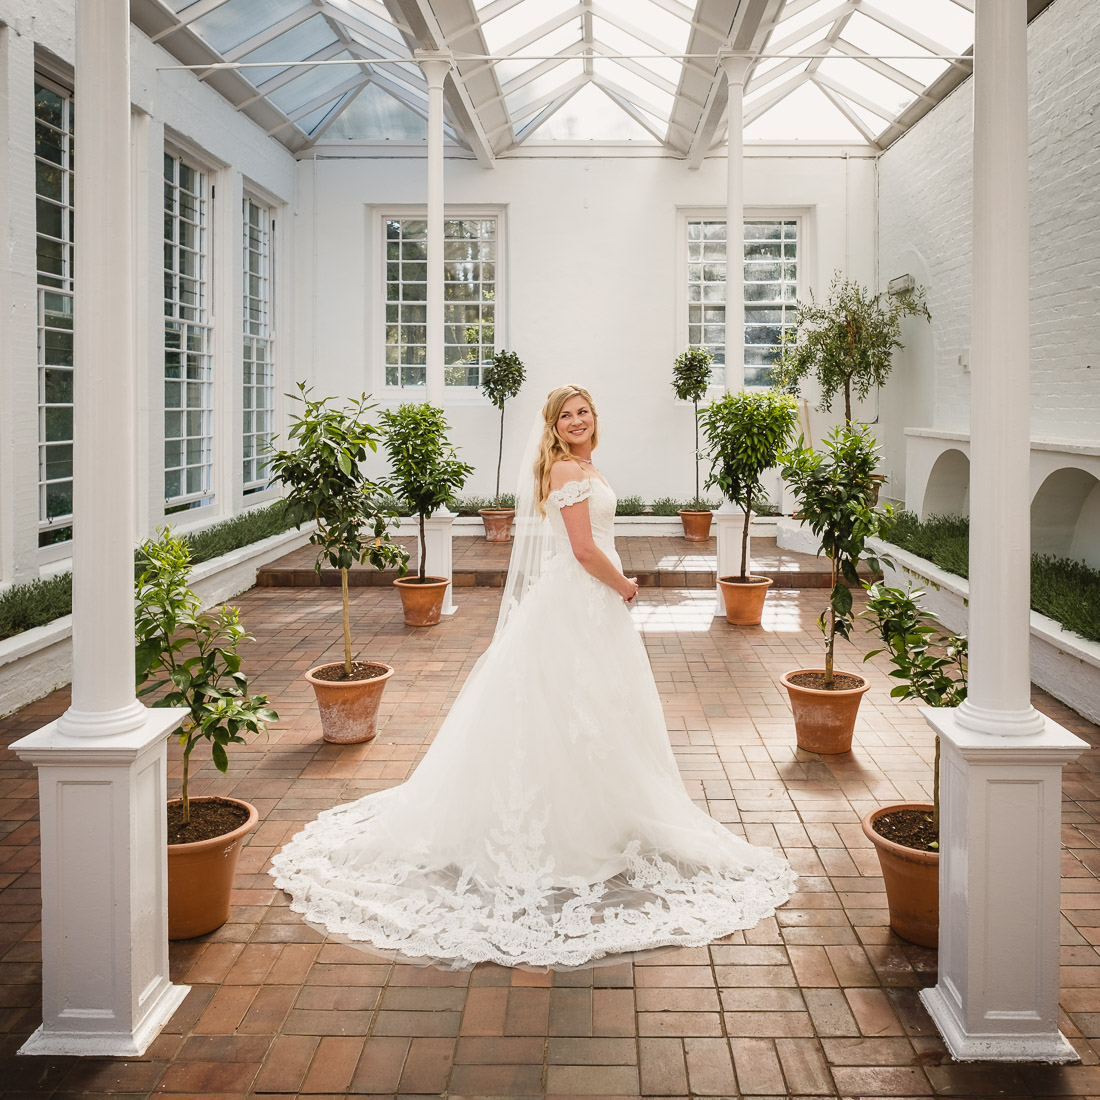 The Orangery Culzean Castle Wedding